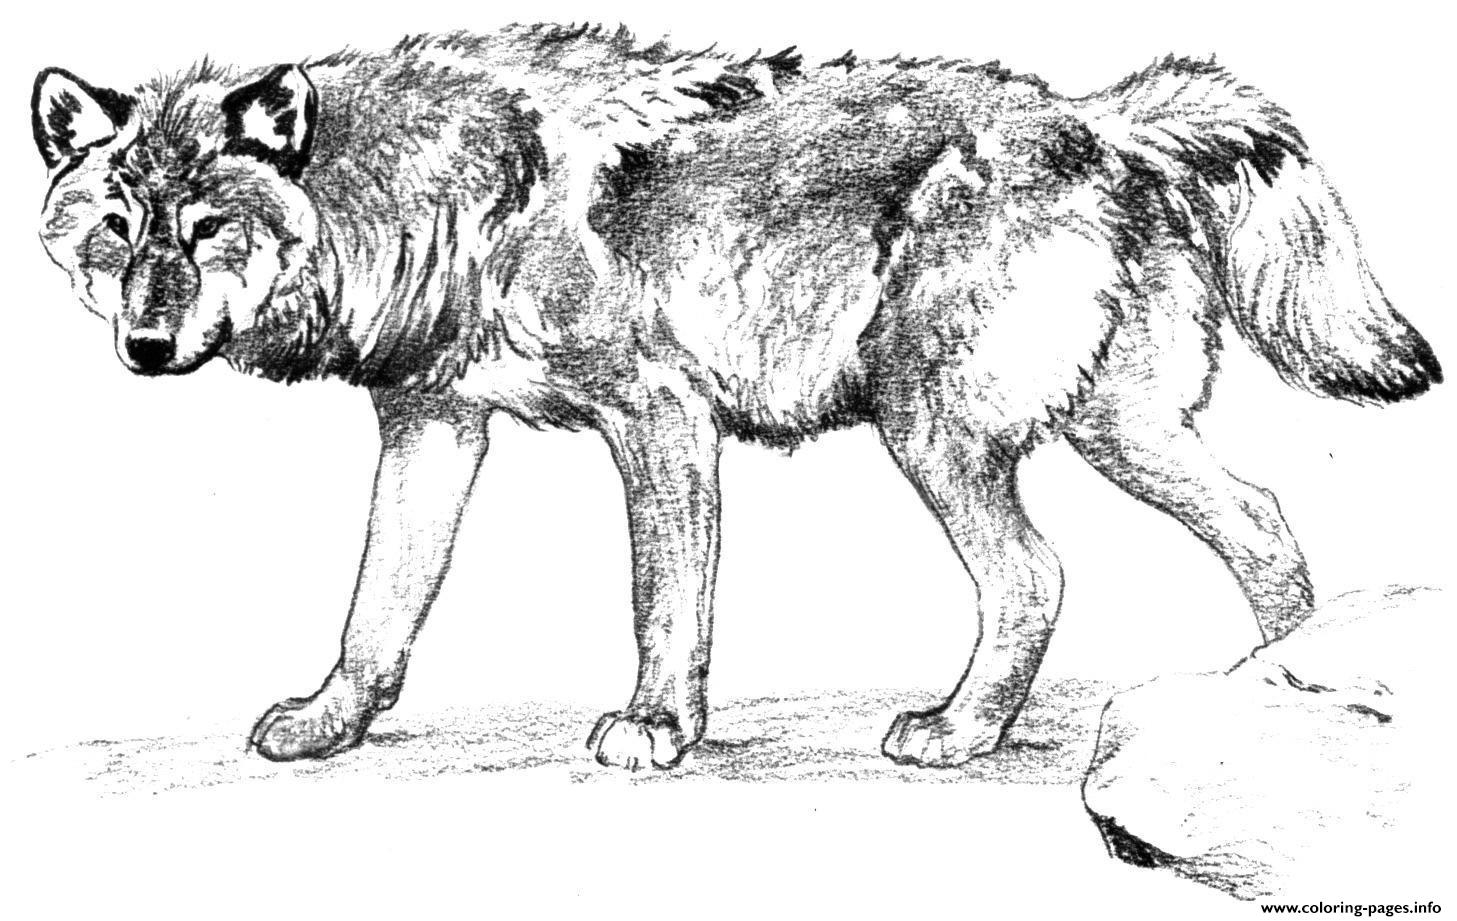 Wolf Coloring Pages Realistic Collection Printable Coloring Pages to Print Of Wolf Coloring Pages Elegant Free Printable Wolf Coloring Pages for Download